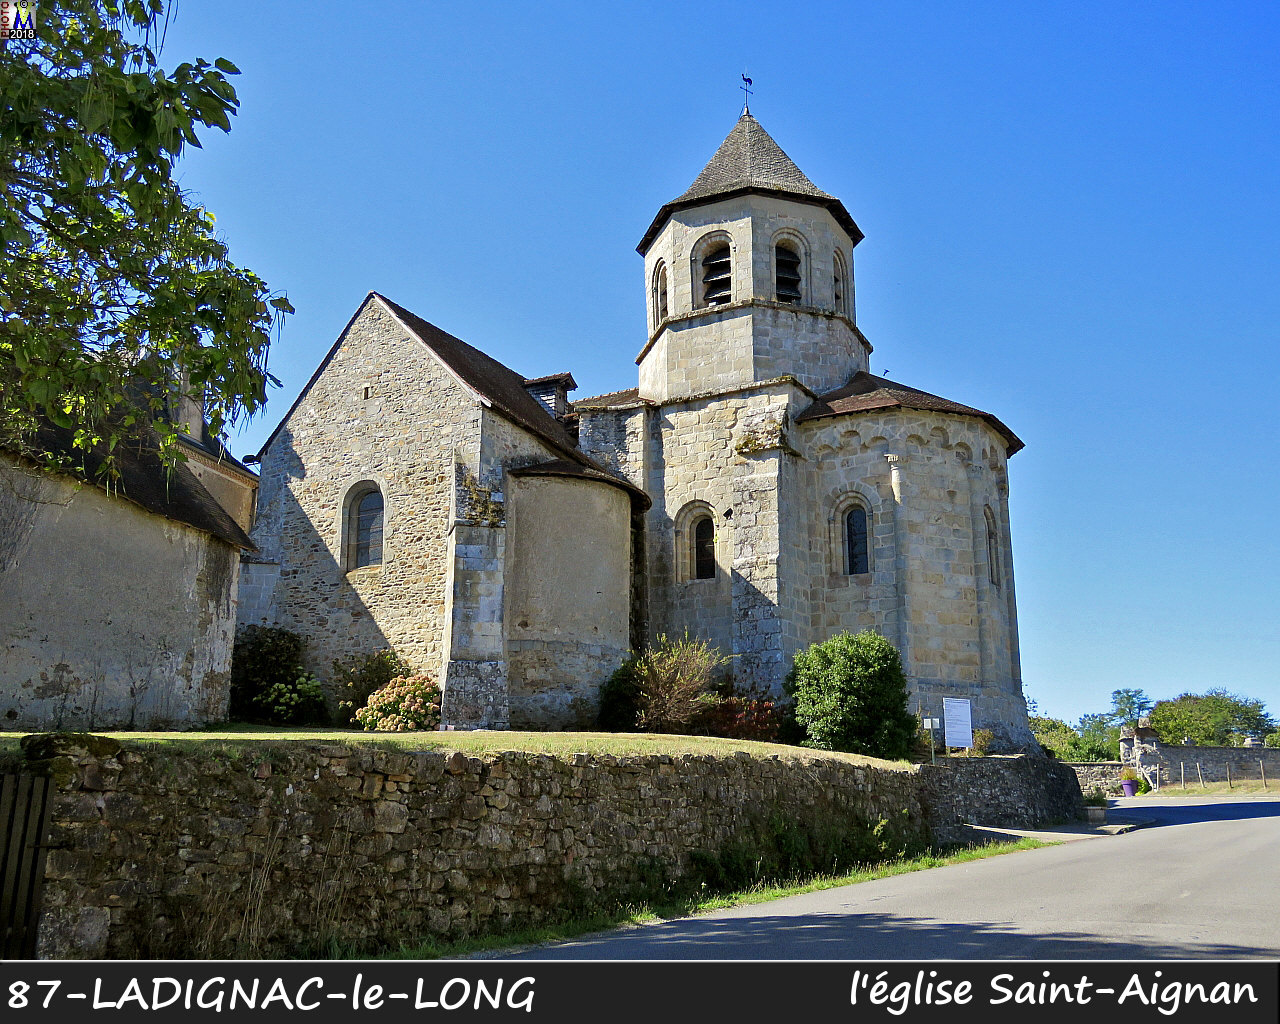 87LADIGNAC-LONG_eglise_102.jpg